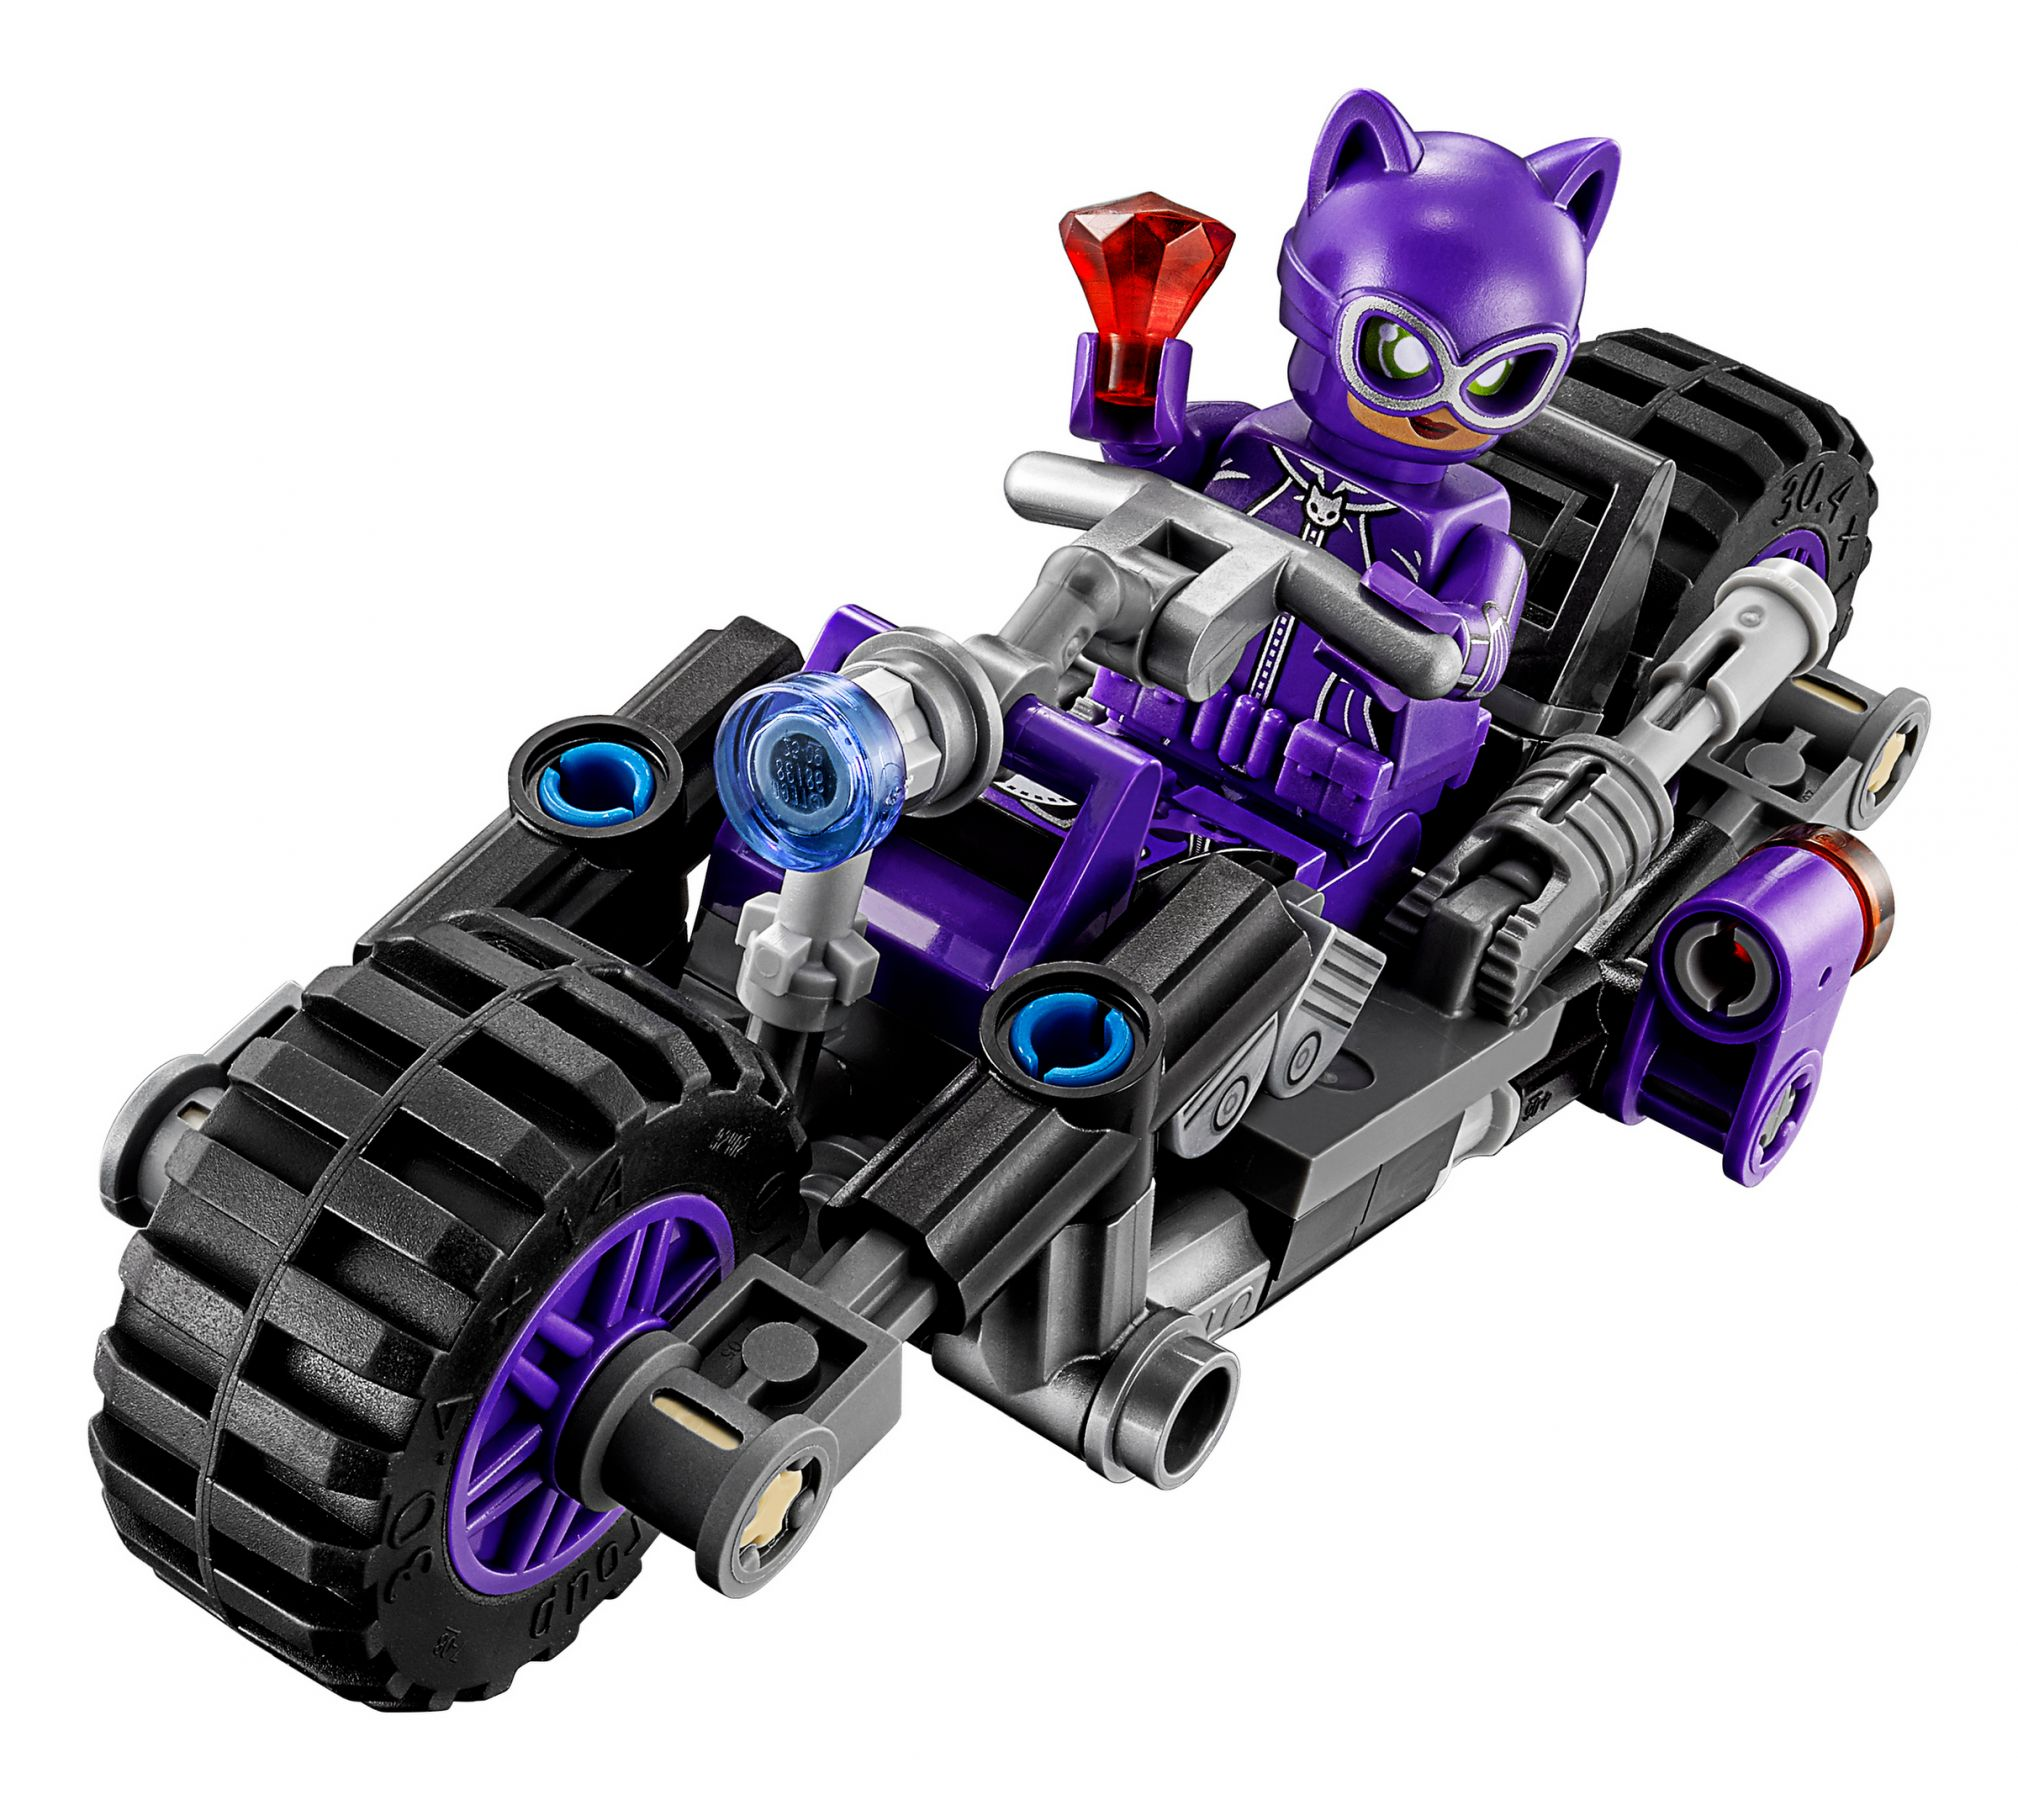 LEGO The LEGO Batman Movie 70902 Catwoman™: Catcycle-Verfolgungsjagd LEGO_70902_alt2.jpg